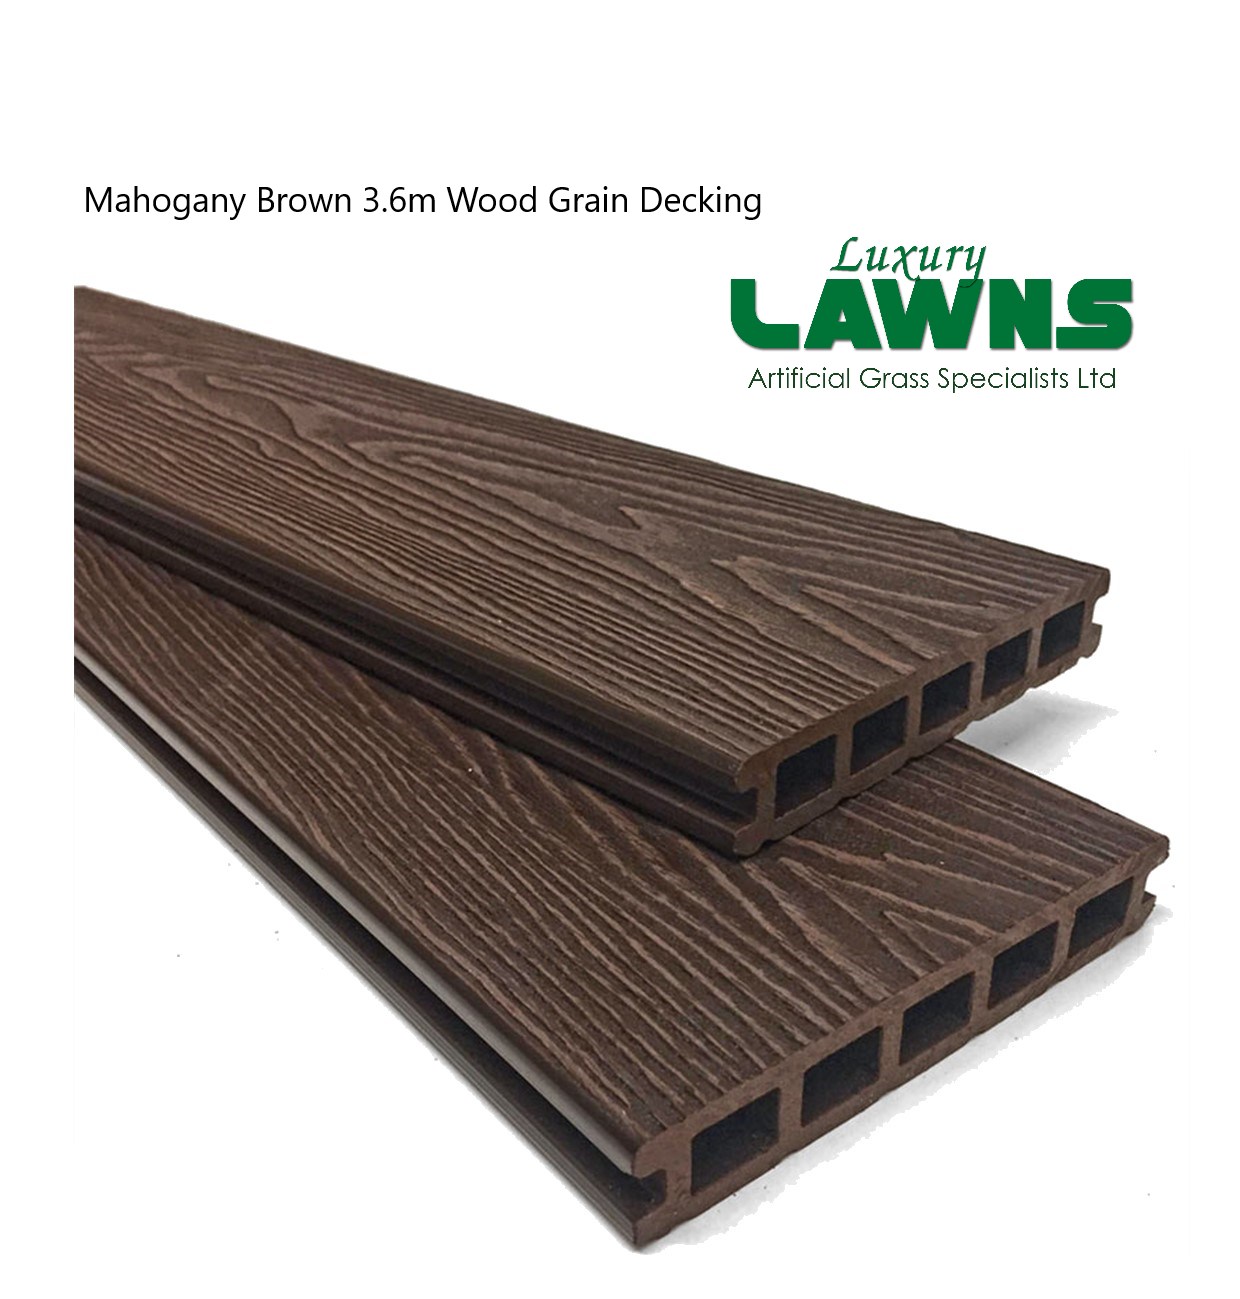 Mahogany Brown Wood Grain Composite Decking Kit 3.6m Boards (Reversible)